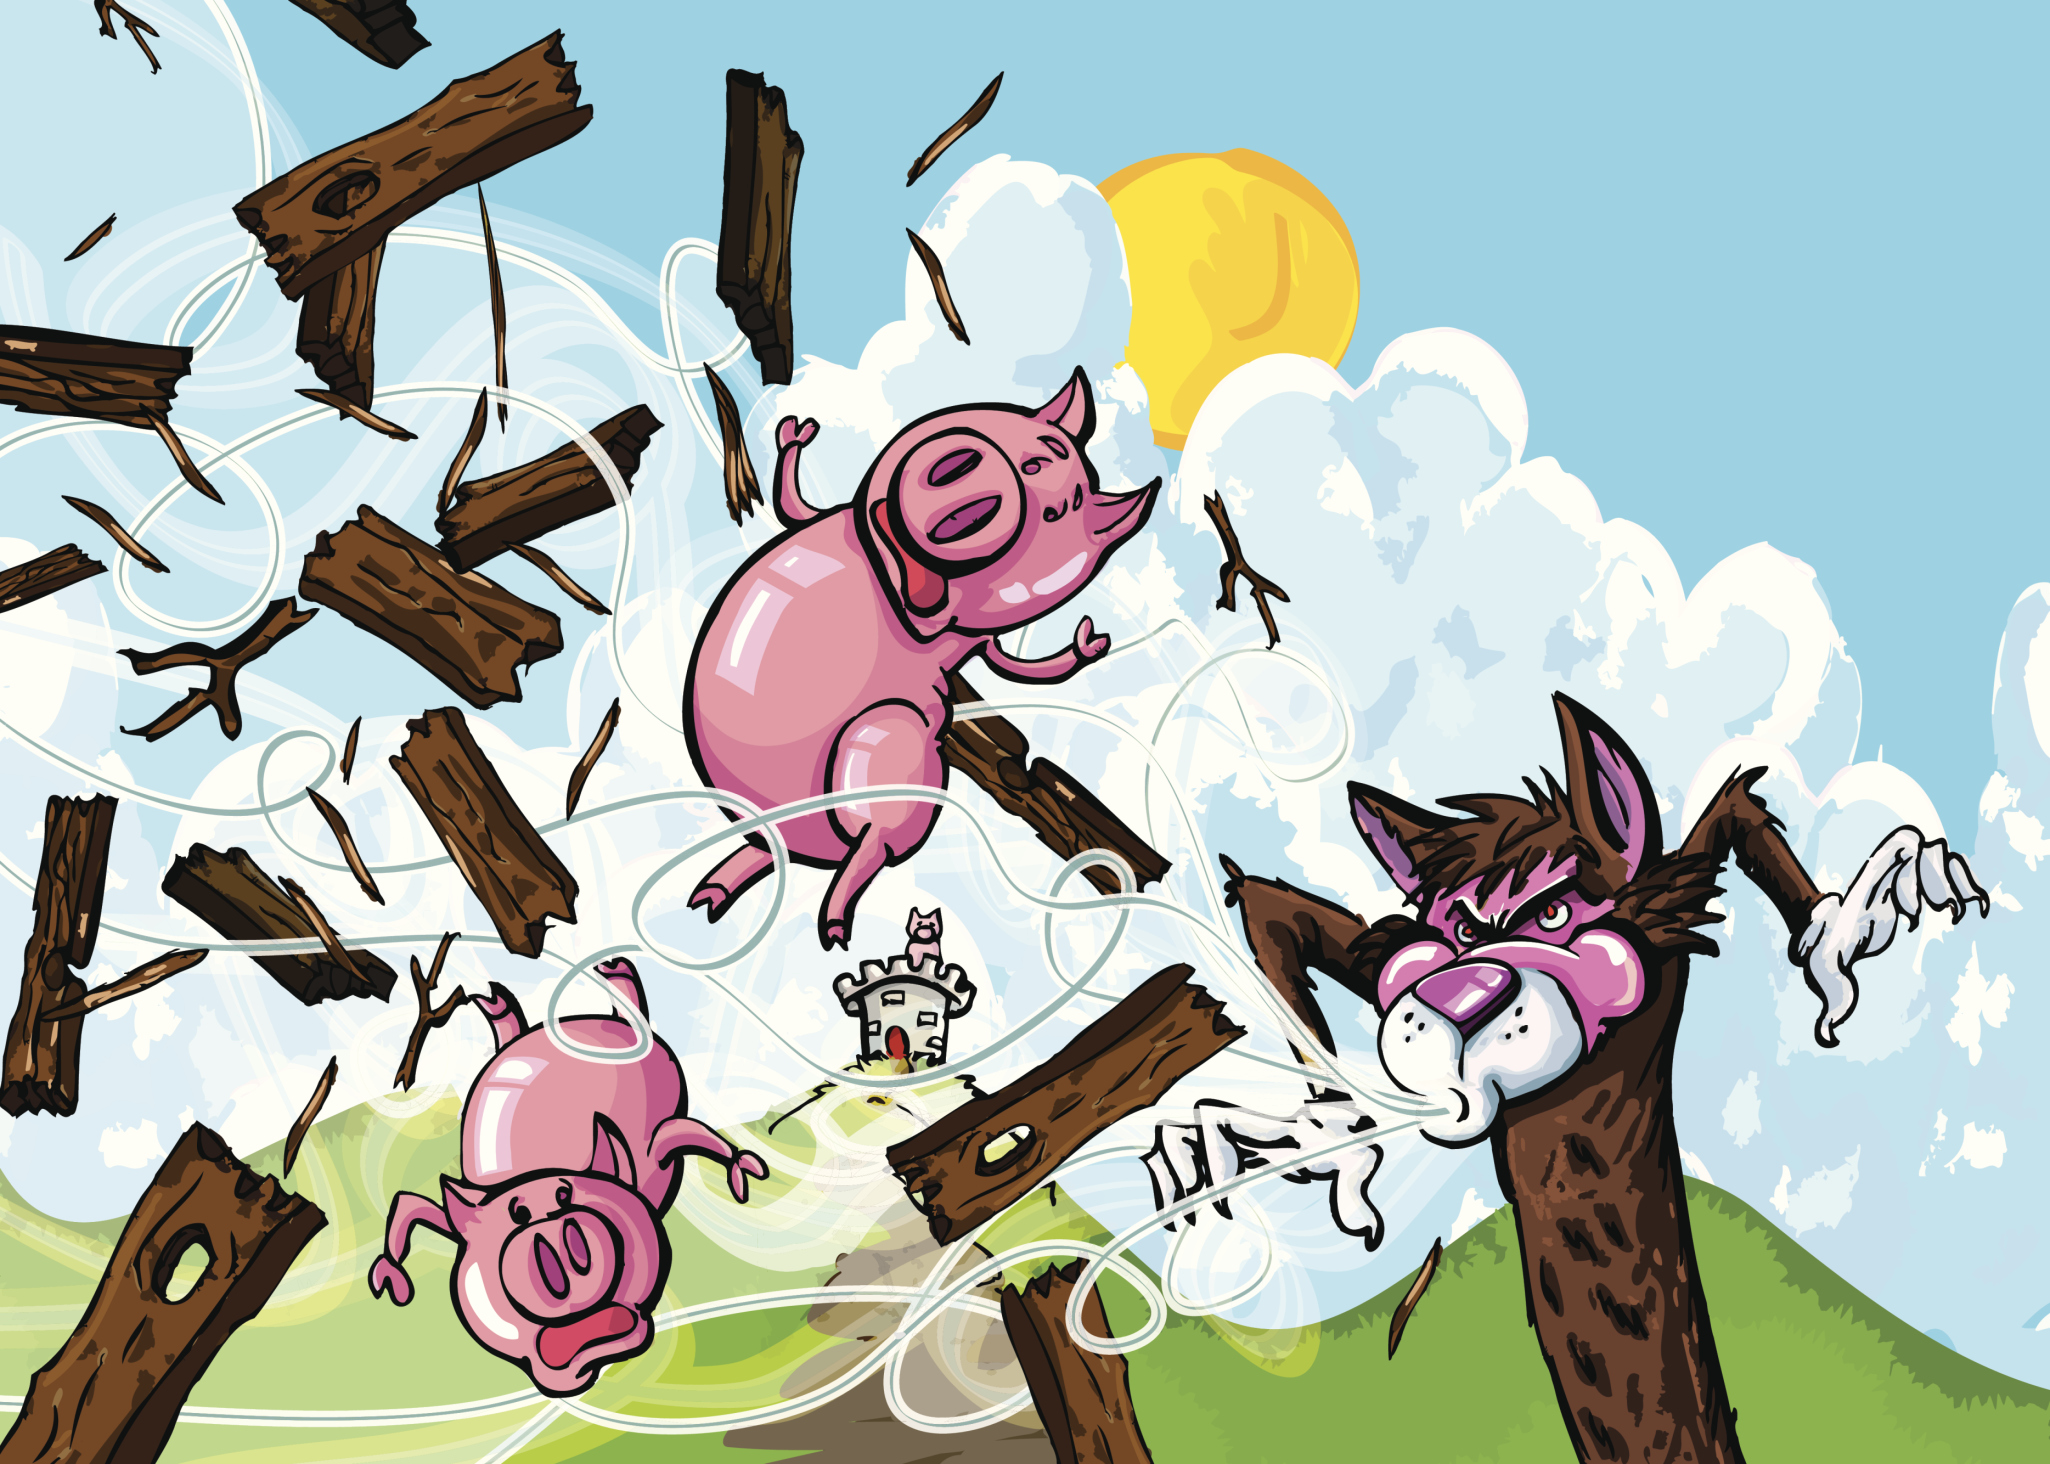 What The 3 Little Pigs Can Teach Us About Risk Assessments